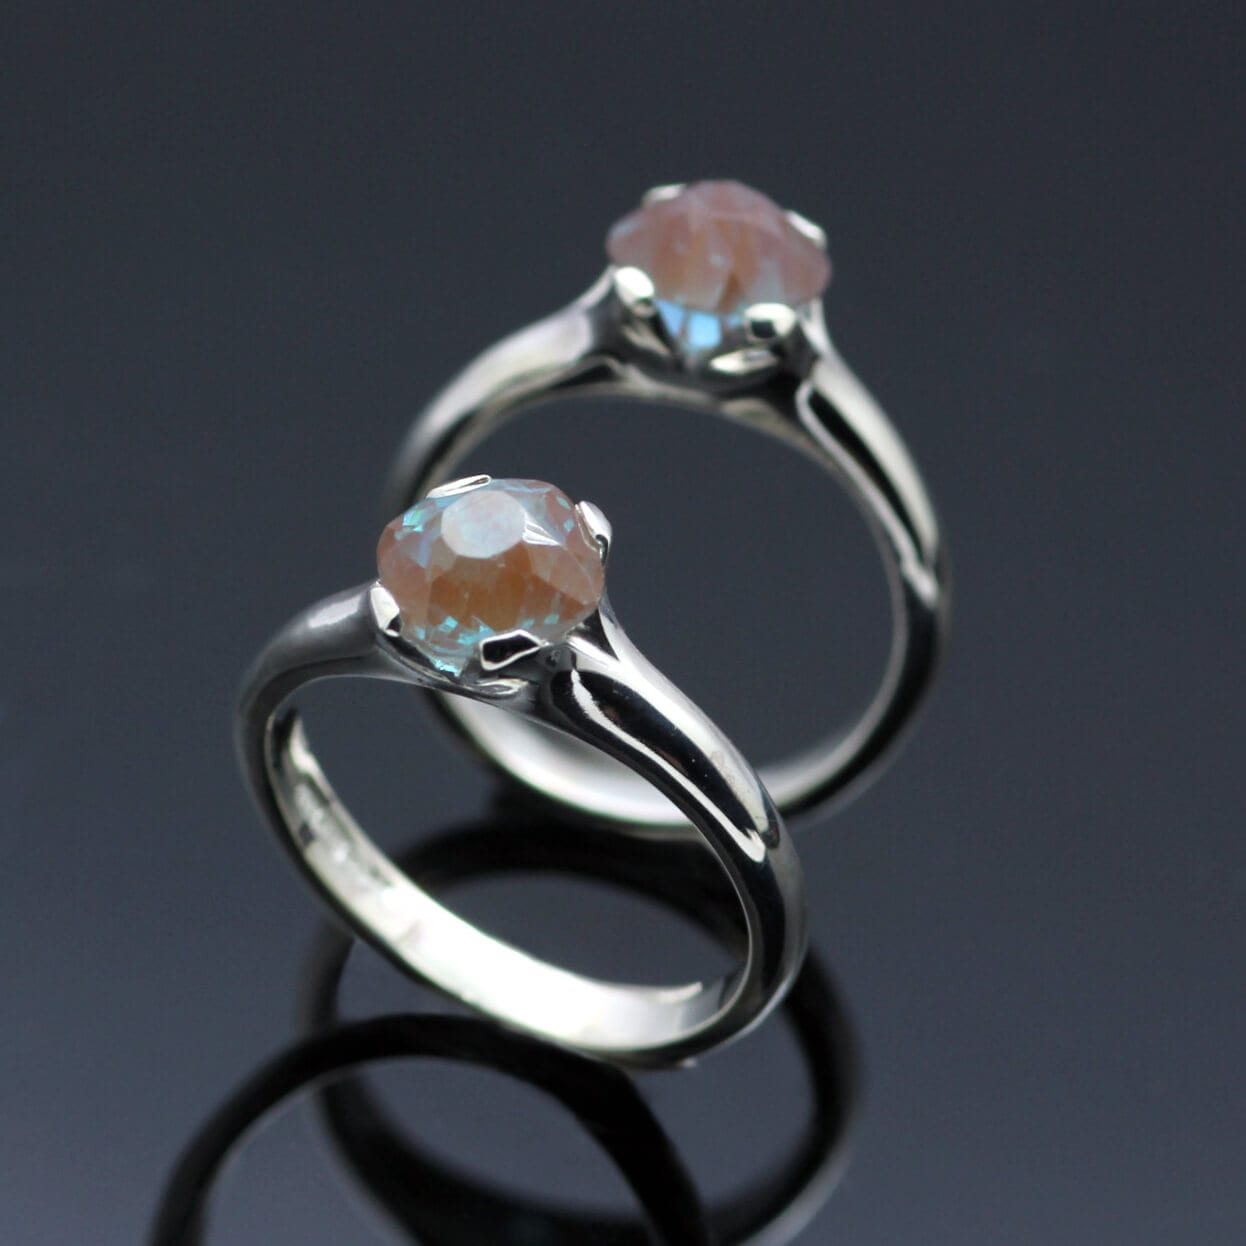 Bespoke matching cocktail rings handmade in Sterling Silver